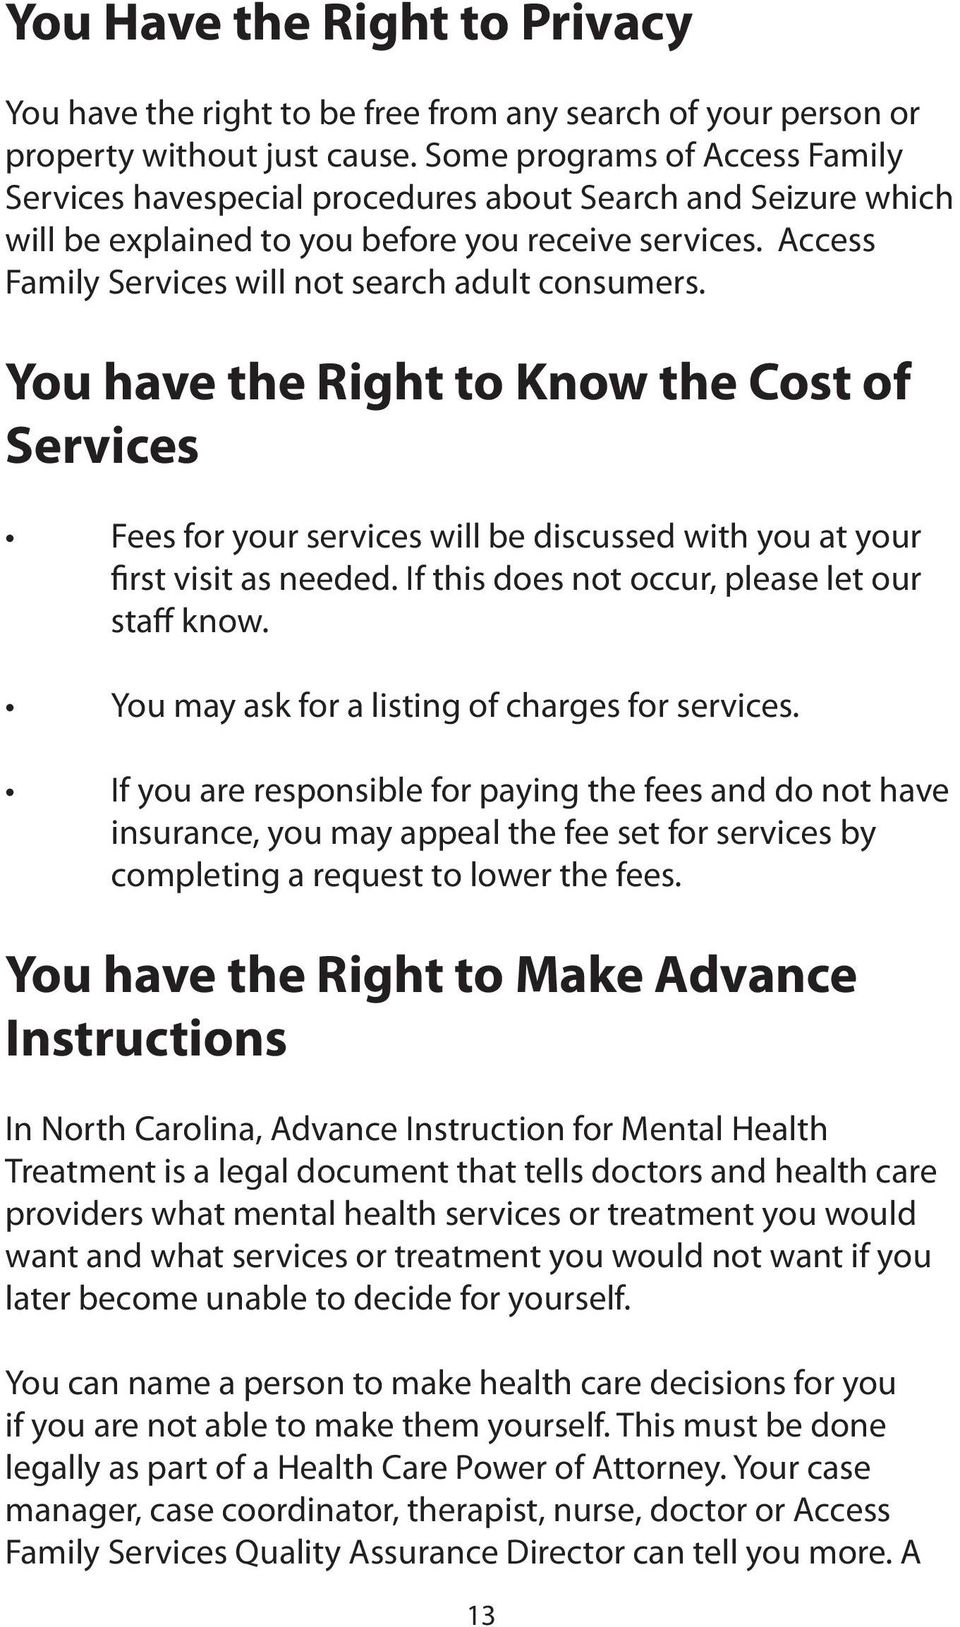 Access Family Services will not search adult consumers. You have the Right to Know the Cost of Services Fees for your services will be discussed with you at your first visit as needed.